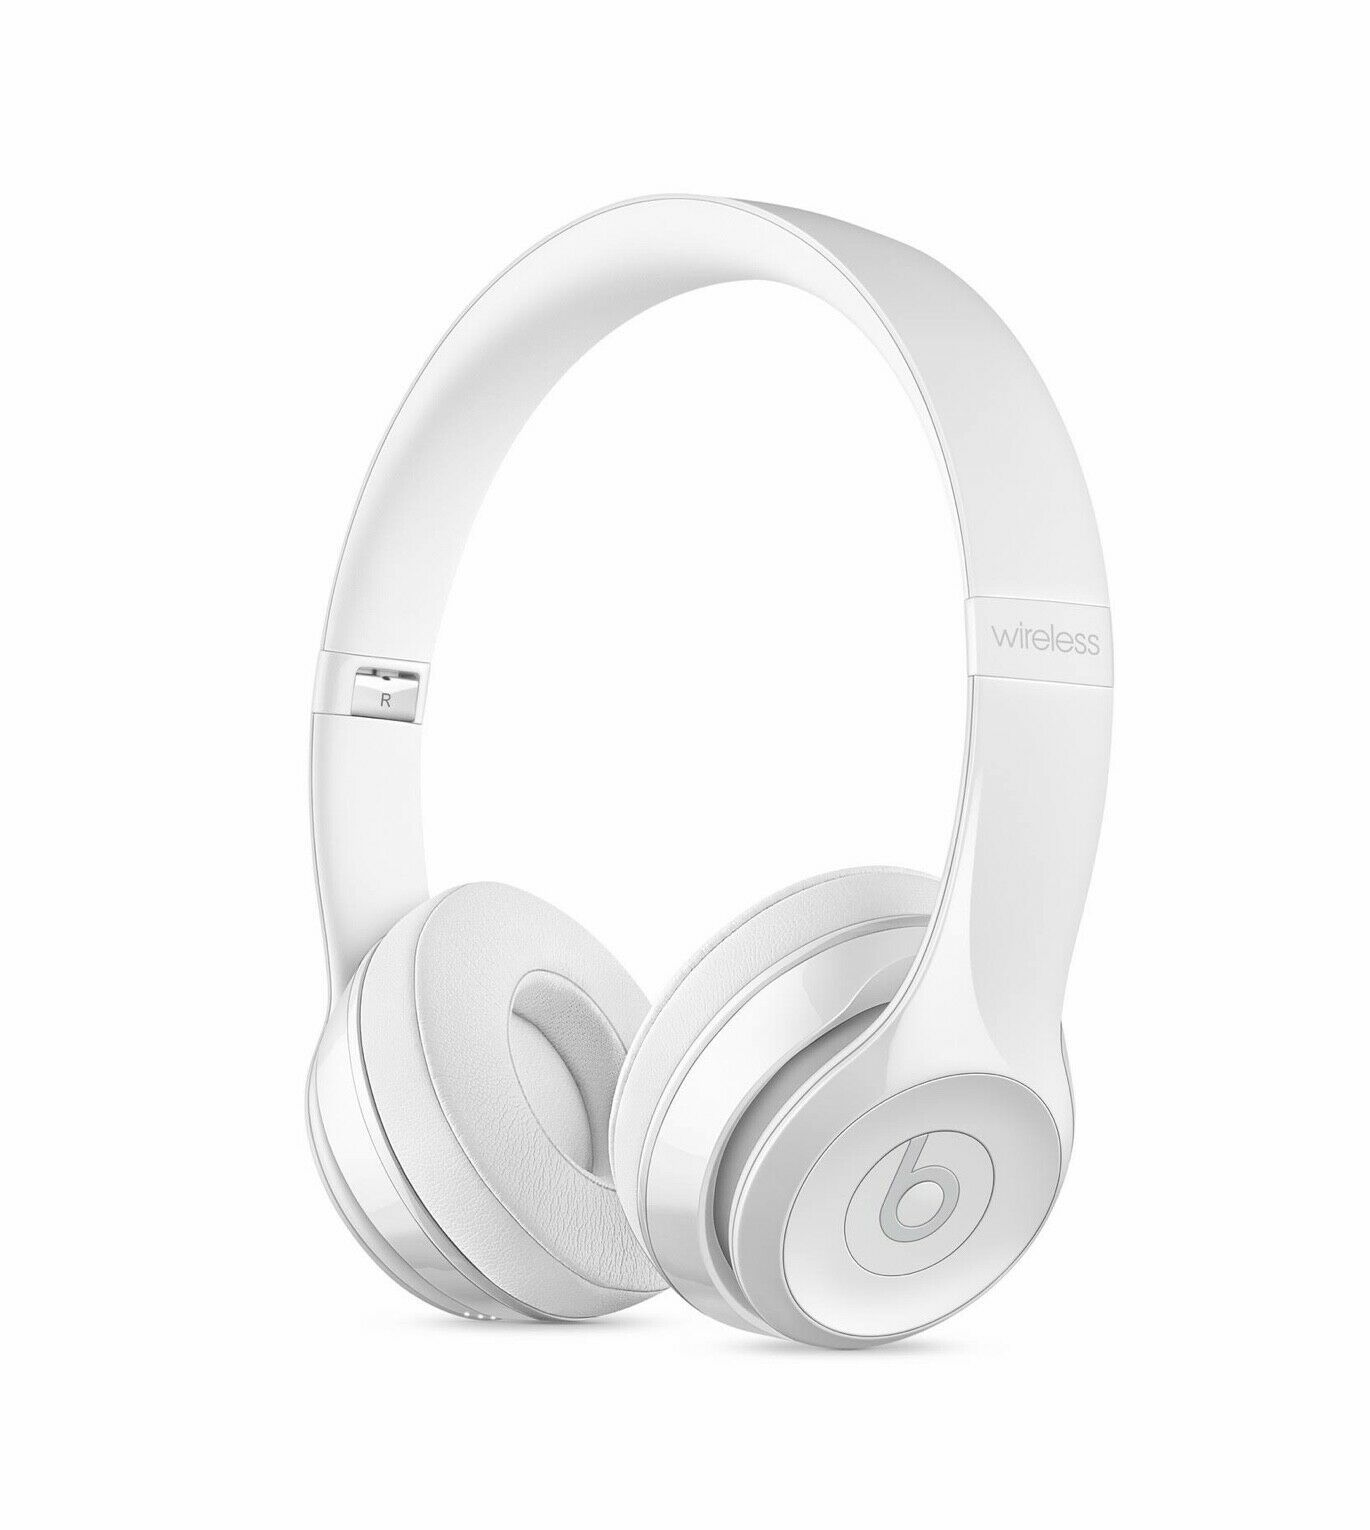 Primary image for Beats by Dr Dre Beats Solo 3 Wireless Headphones in Gloss White